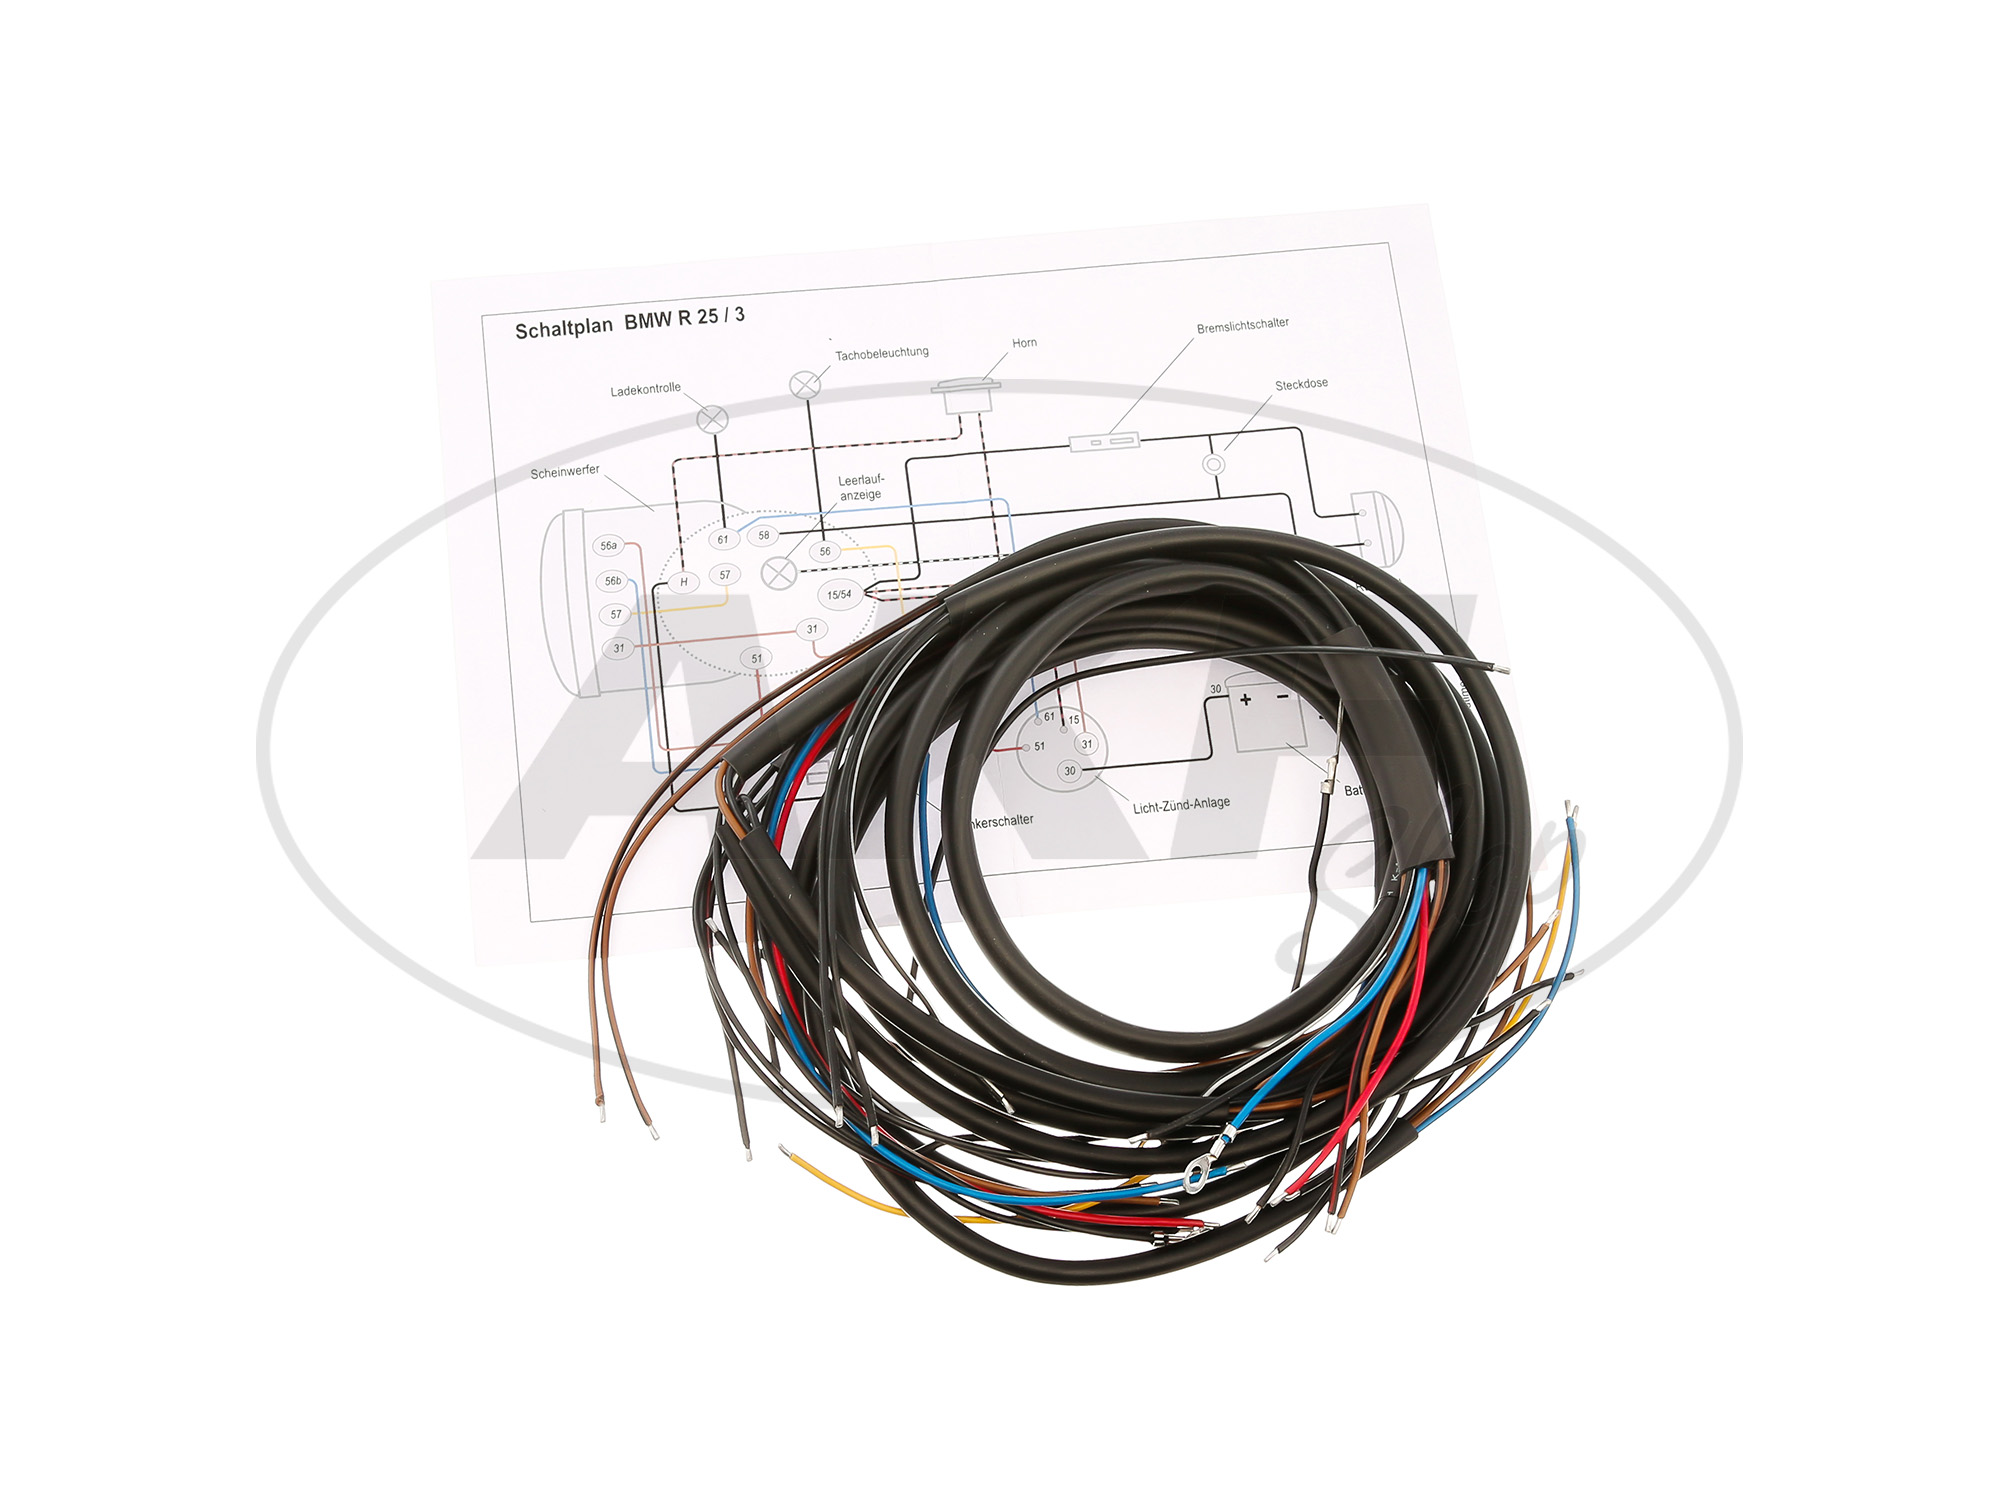 Image #1 Cable suitable for BMW R25 / 3 Image #2 ...